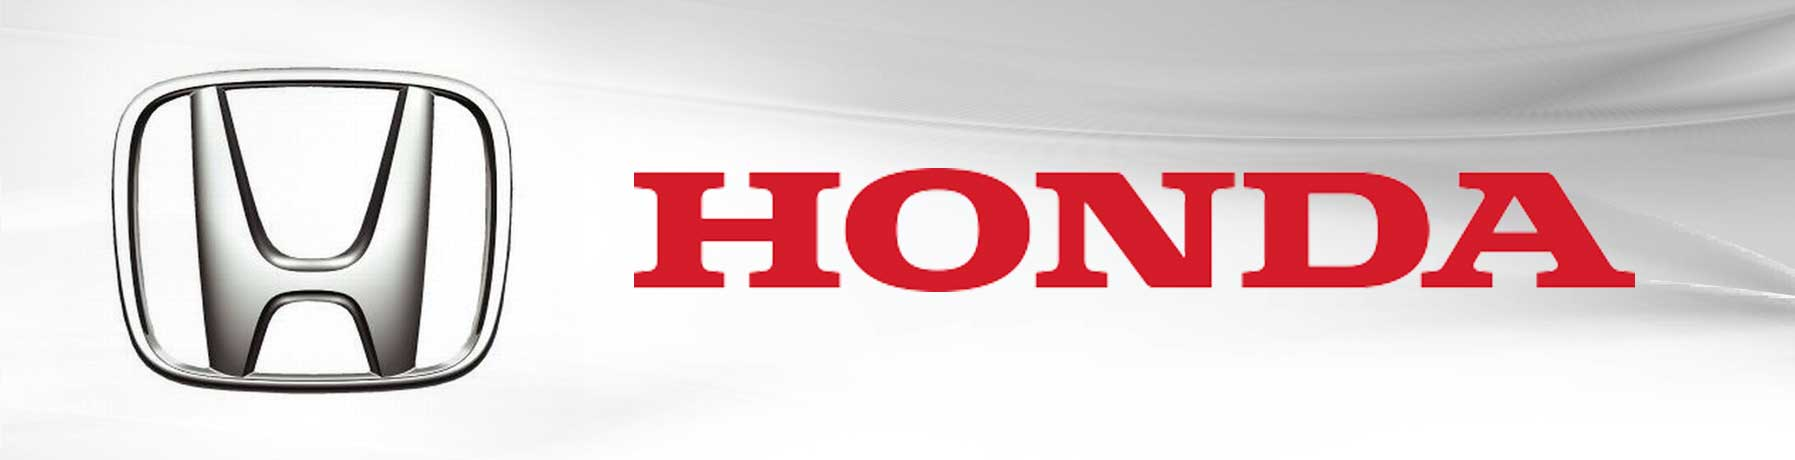 We service Honda vehicles